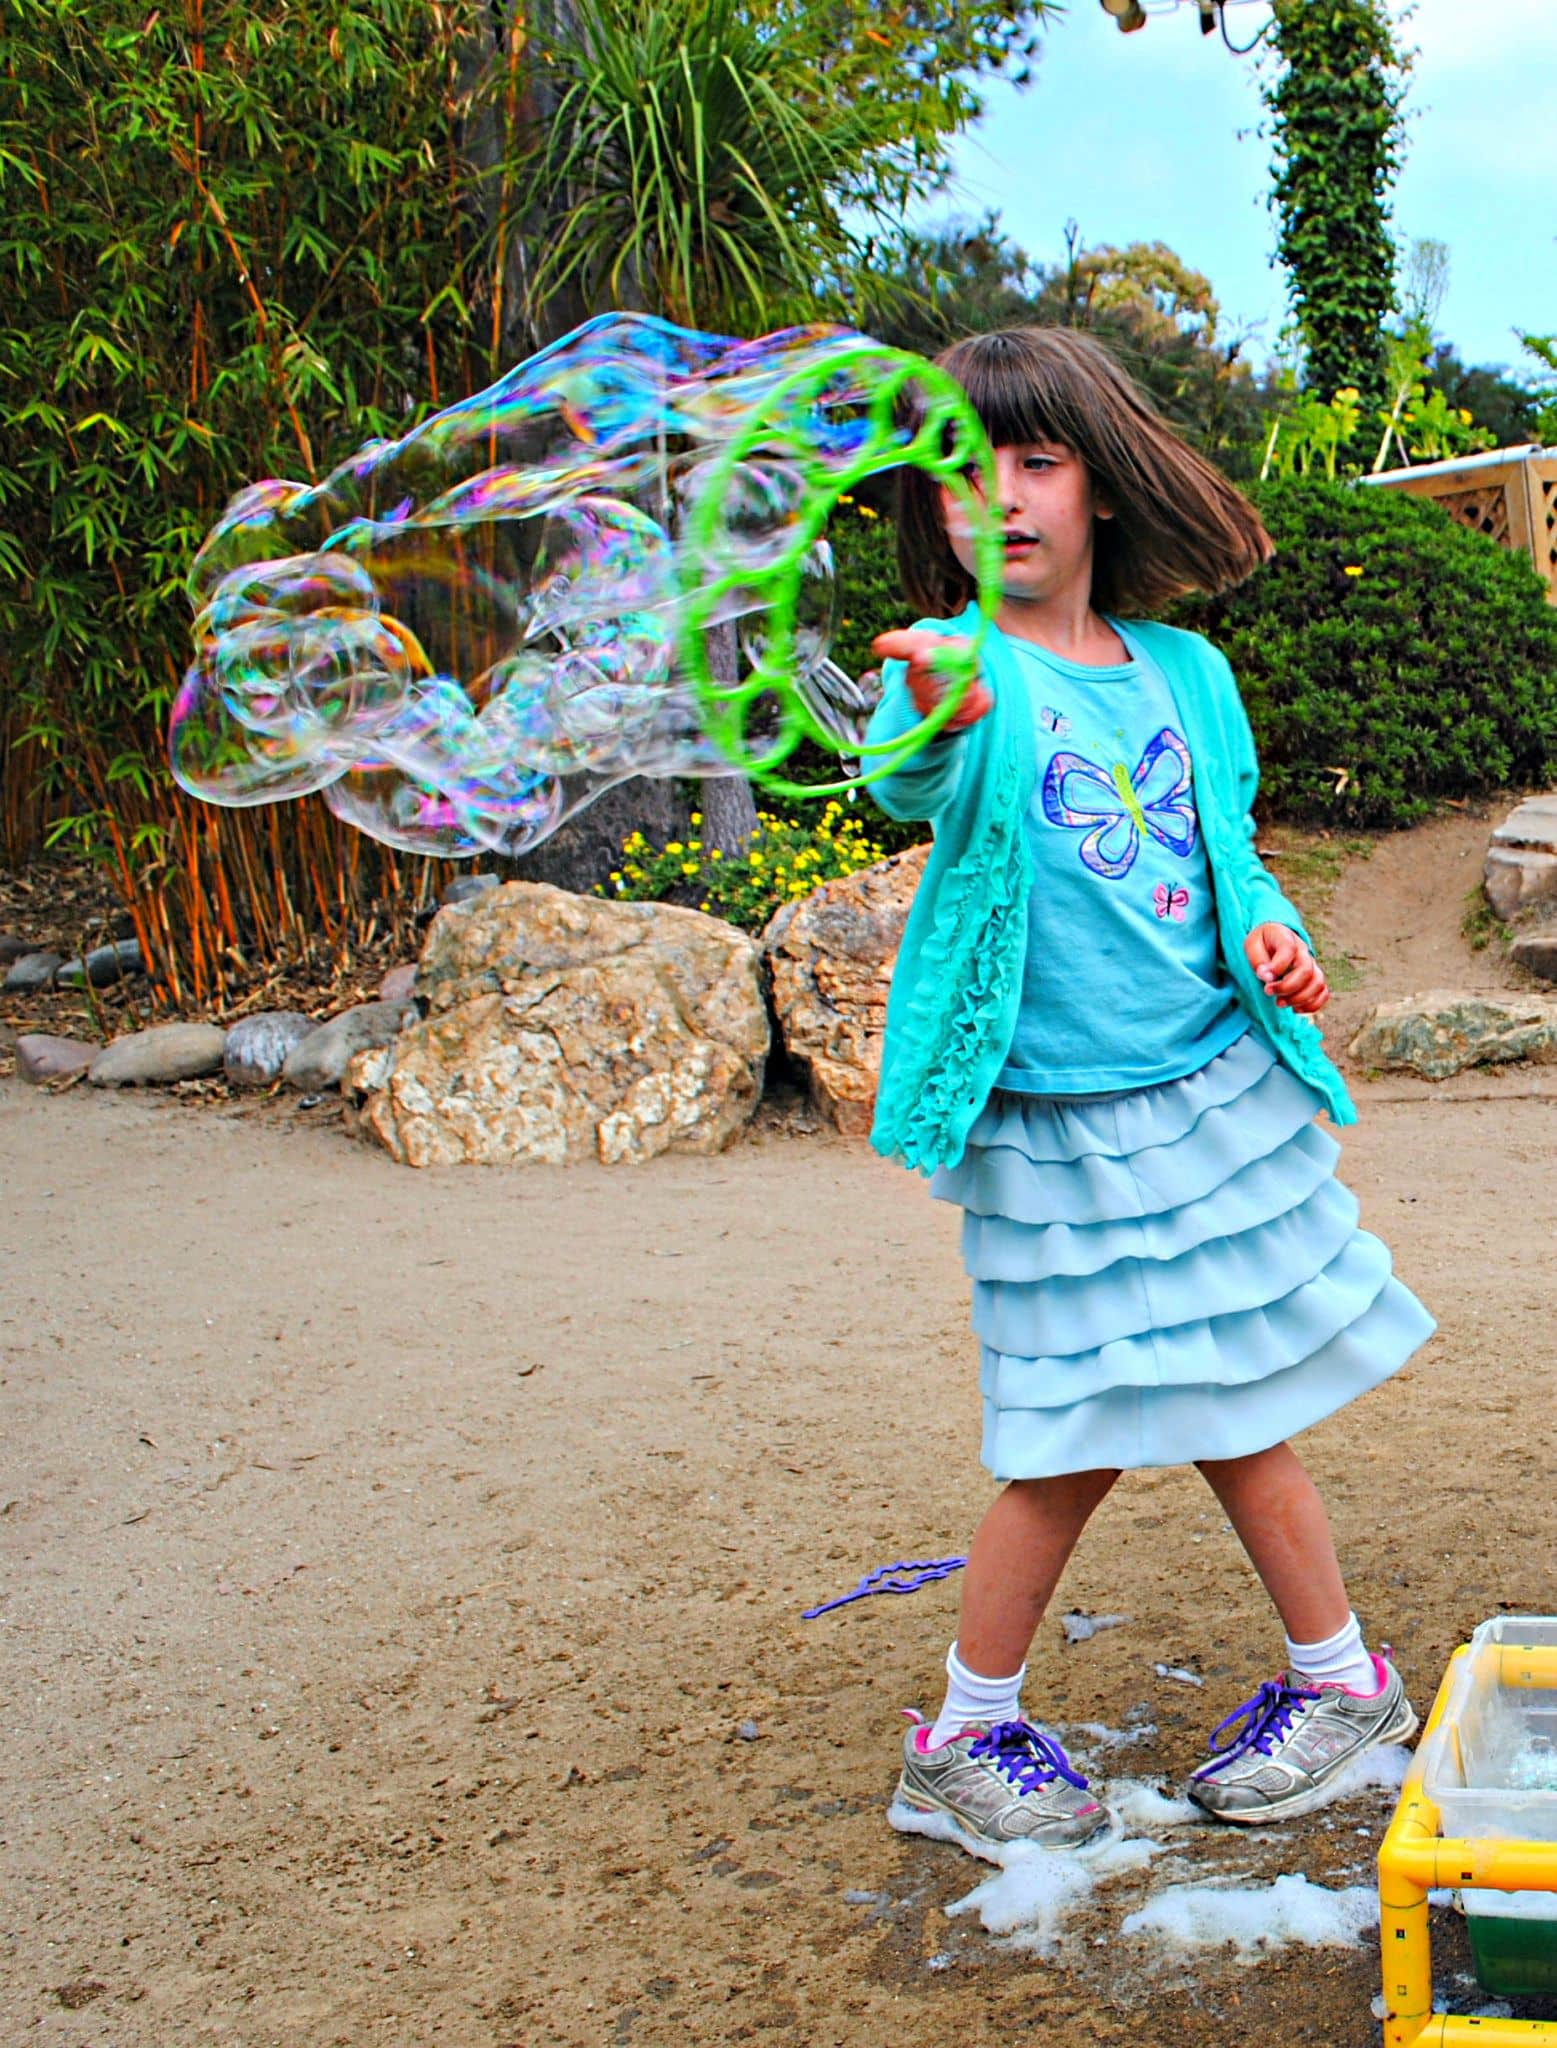 Bubble play keeps summer boredom at bay ~ 10 Fun in the Sun Summer Boredom Busters